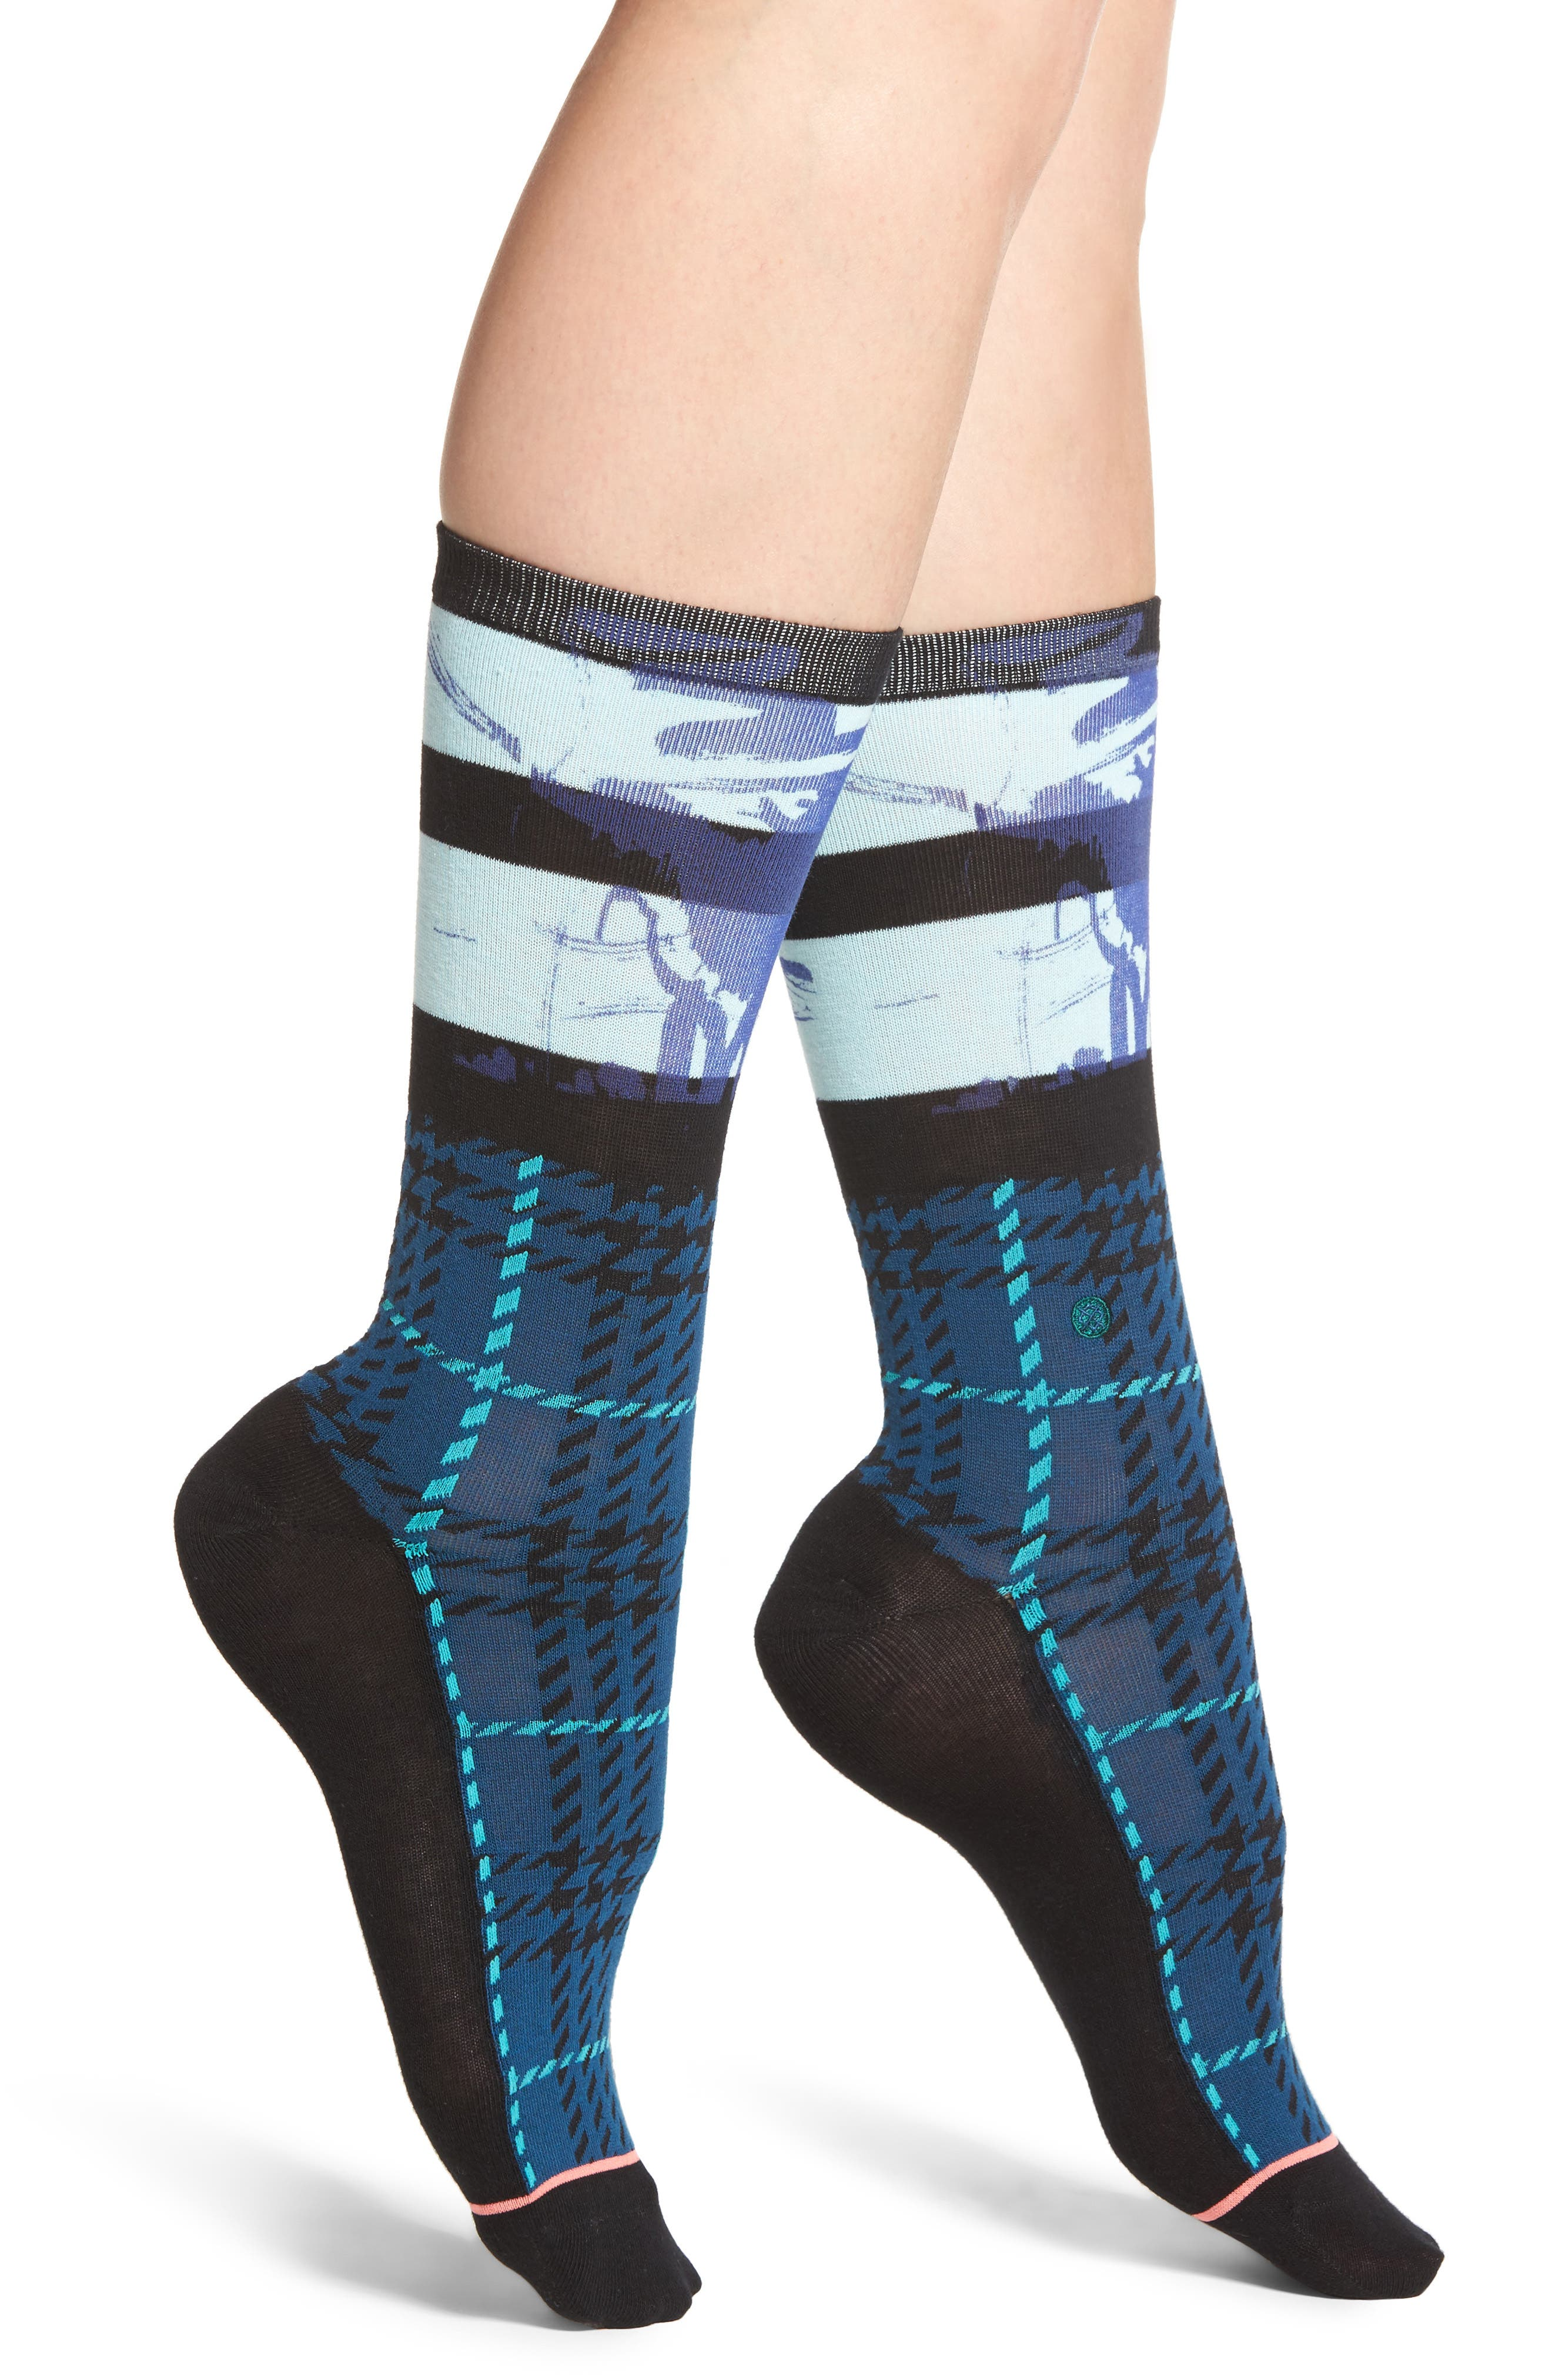 Main Image - Stance Greenpoint Socks